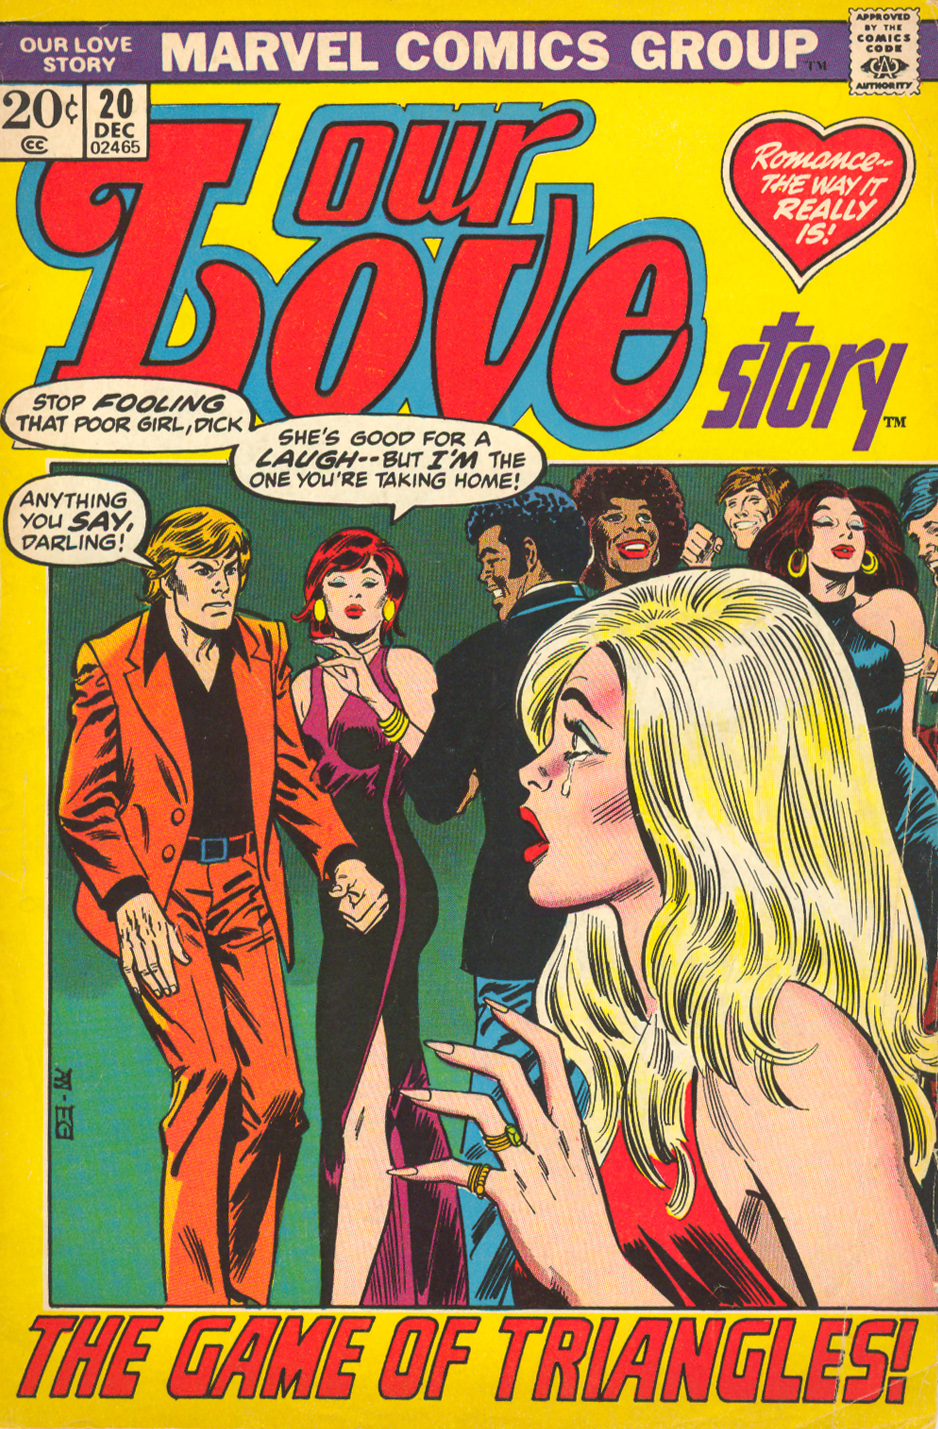 """The Game of Triangles!"" Our Love Story #20 (December 1972) Cover art by Alan Weiss (pencils) and Frank Giacoia (inks), Story penciled by George Tuska and inked by Paul Reinman Story written by Joy Hartle"